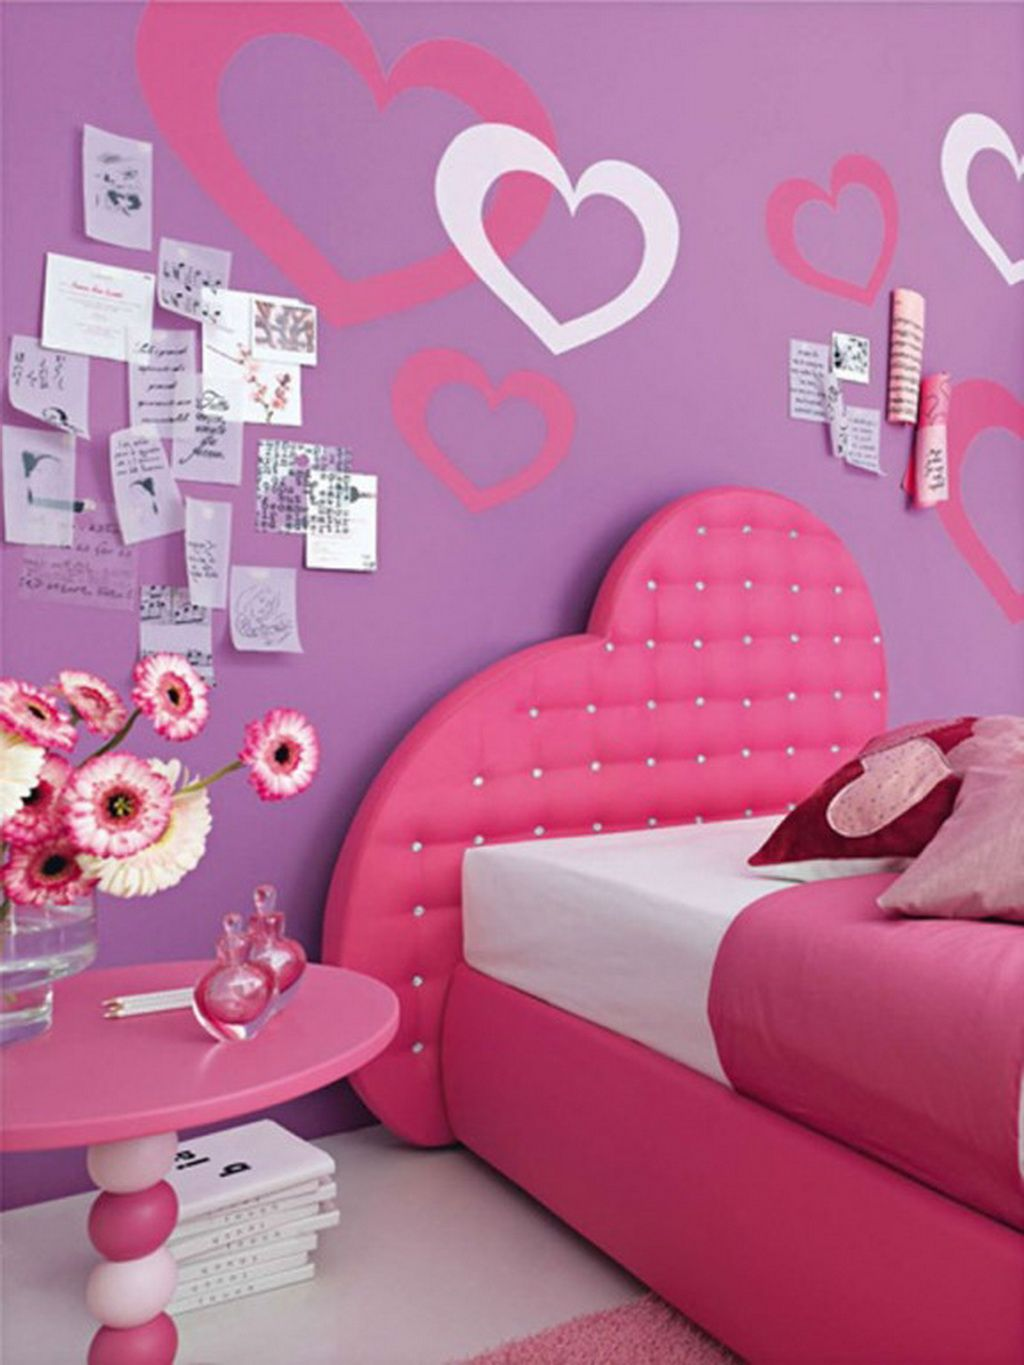 Bedroom Good Looking Girl Bedroom Ideas With Charming Pink Leather Bed Frame On Combined Comforta Pink Bedroom For Girls Tween Girl Bedroom Girl Bedroom Decor